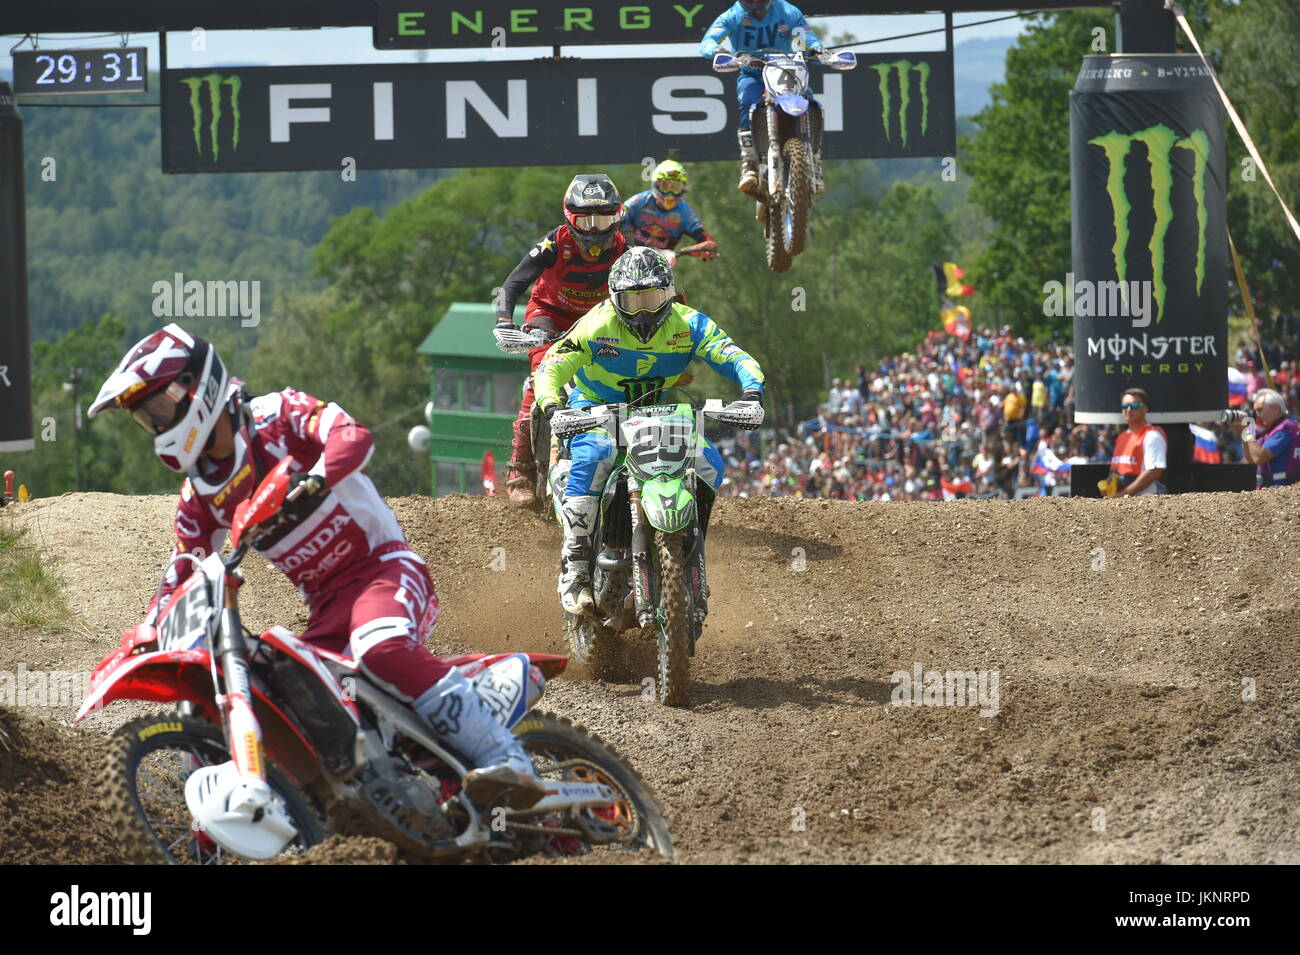 Loket, Czech Republic. 23rd July, 2017. Clement Desalle (Belgium, center) races during the Grand Prix Czech Republic Stock Photo